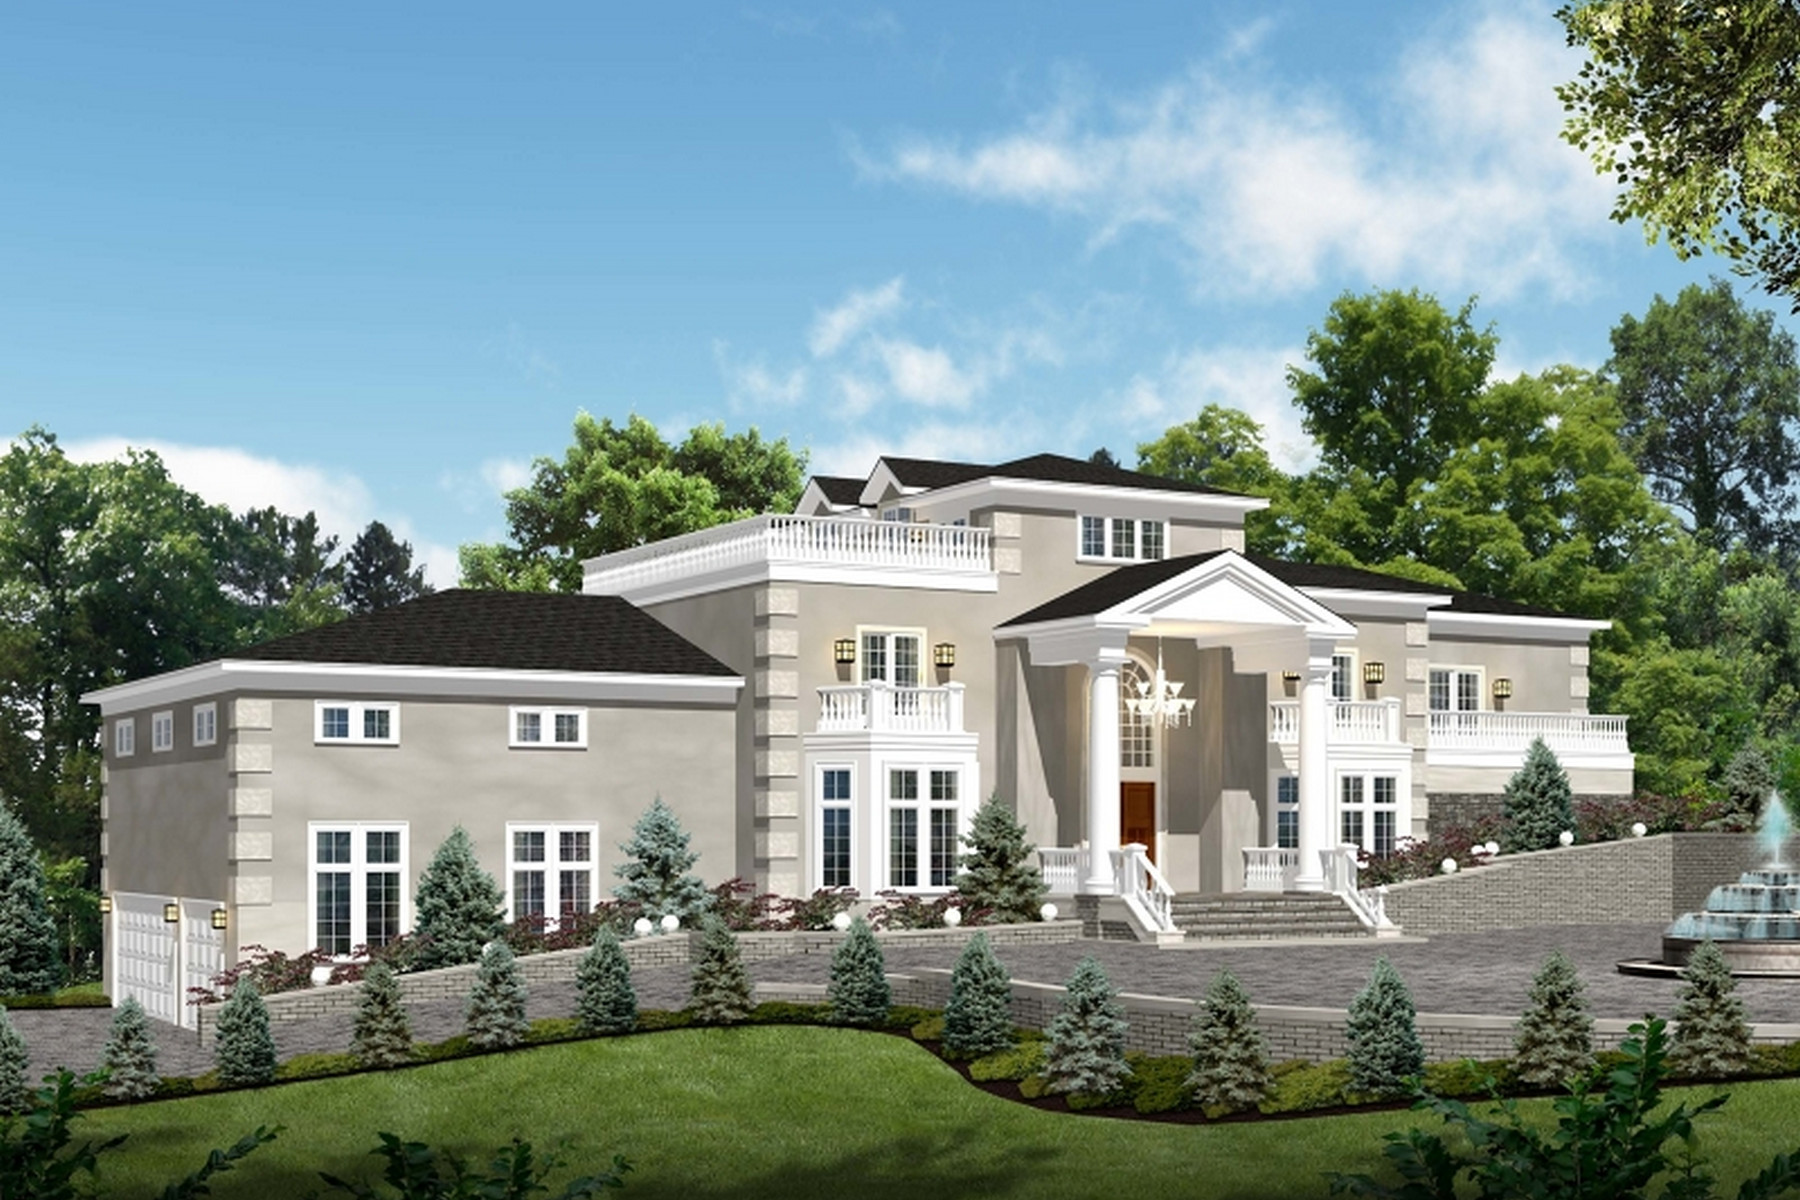 Single Family Homes for Active at Masterful New Construction 57 Glen Avenue West Orange, New Jersey 07052 United States